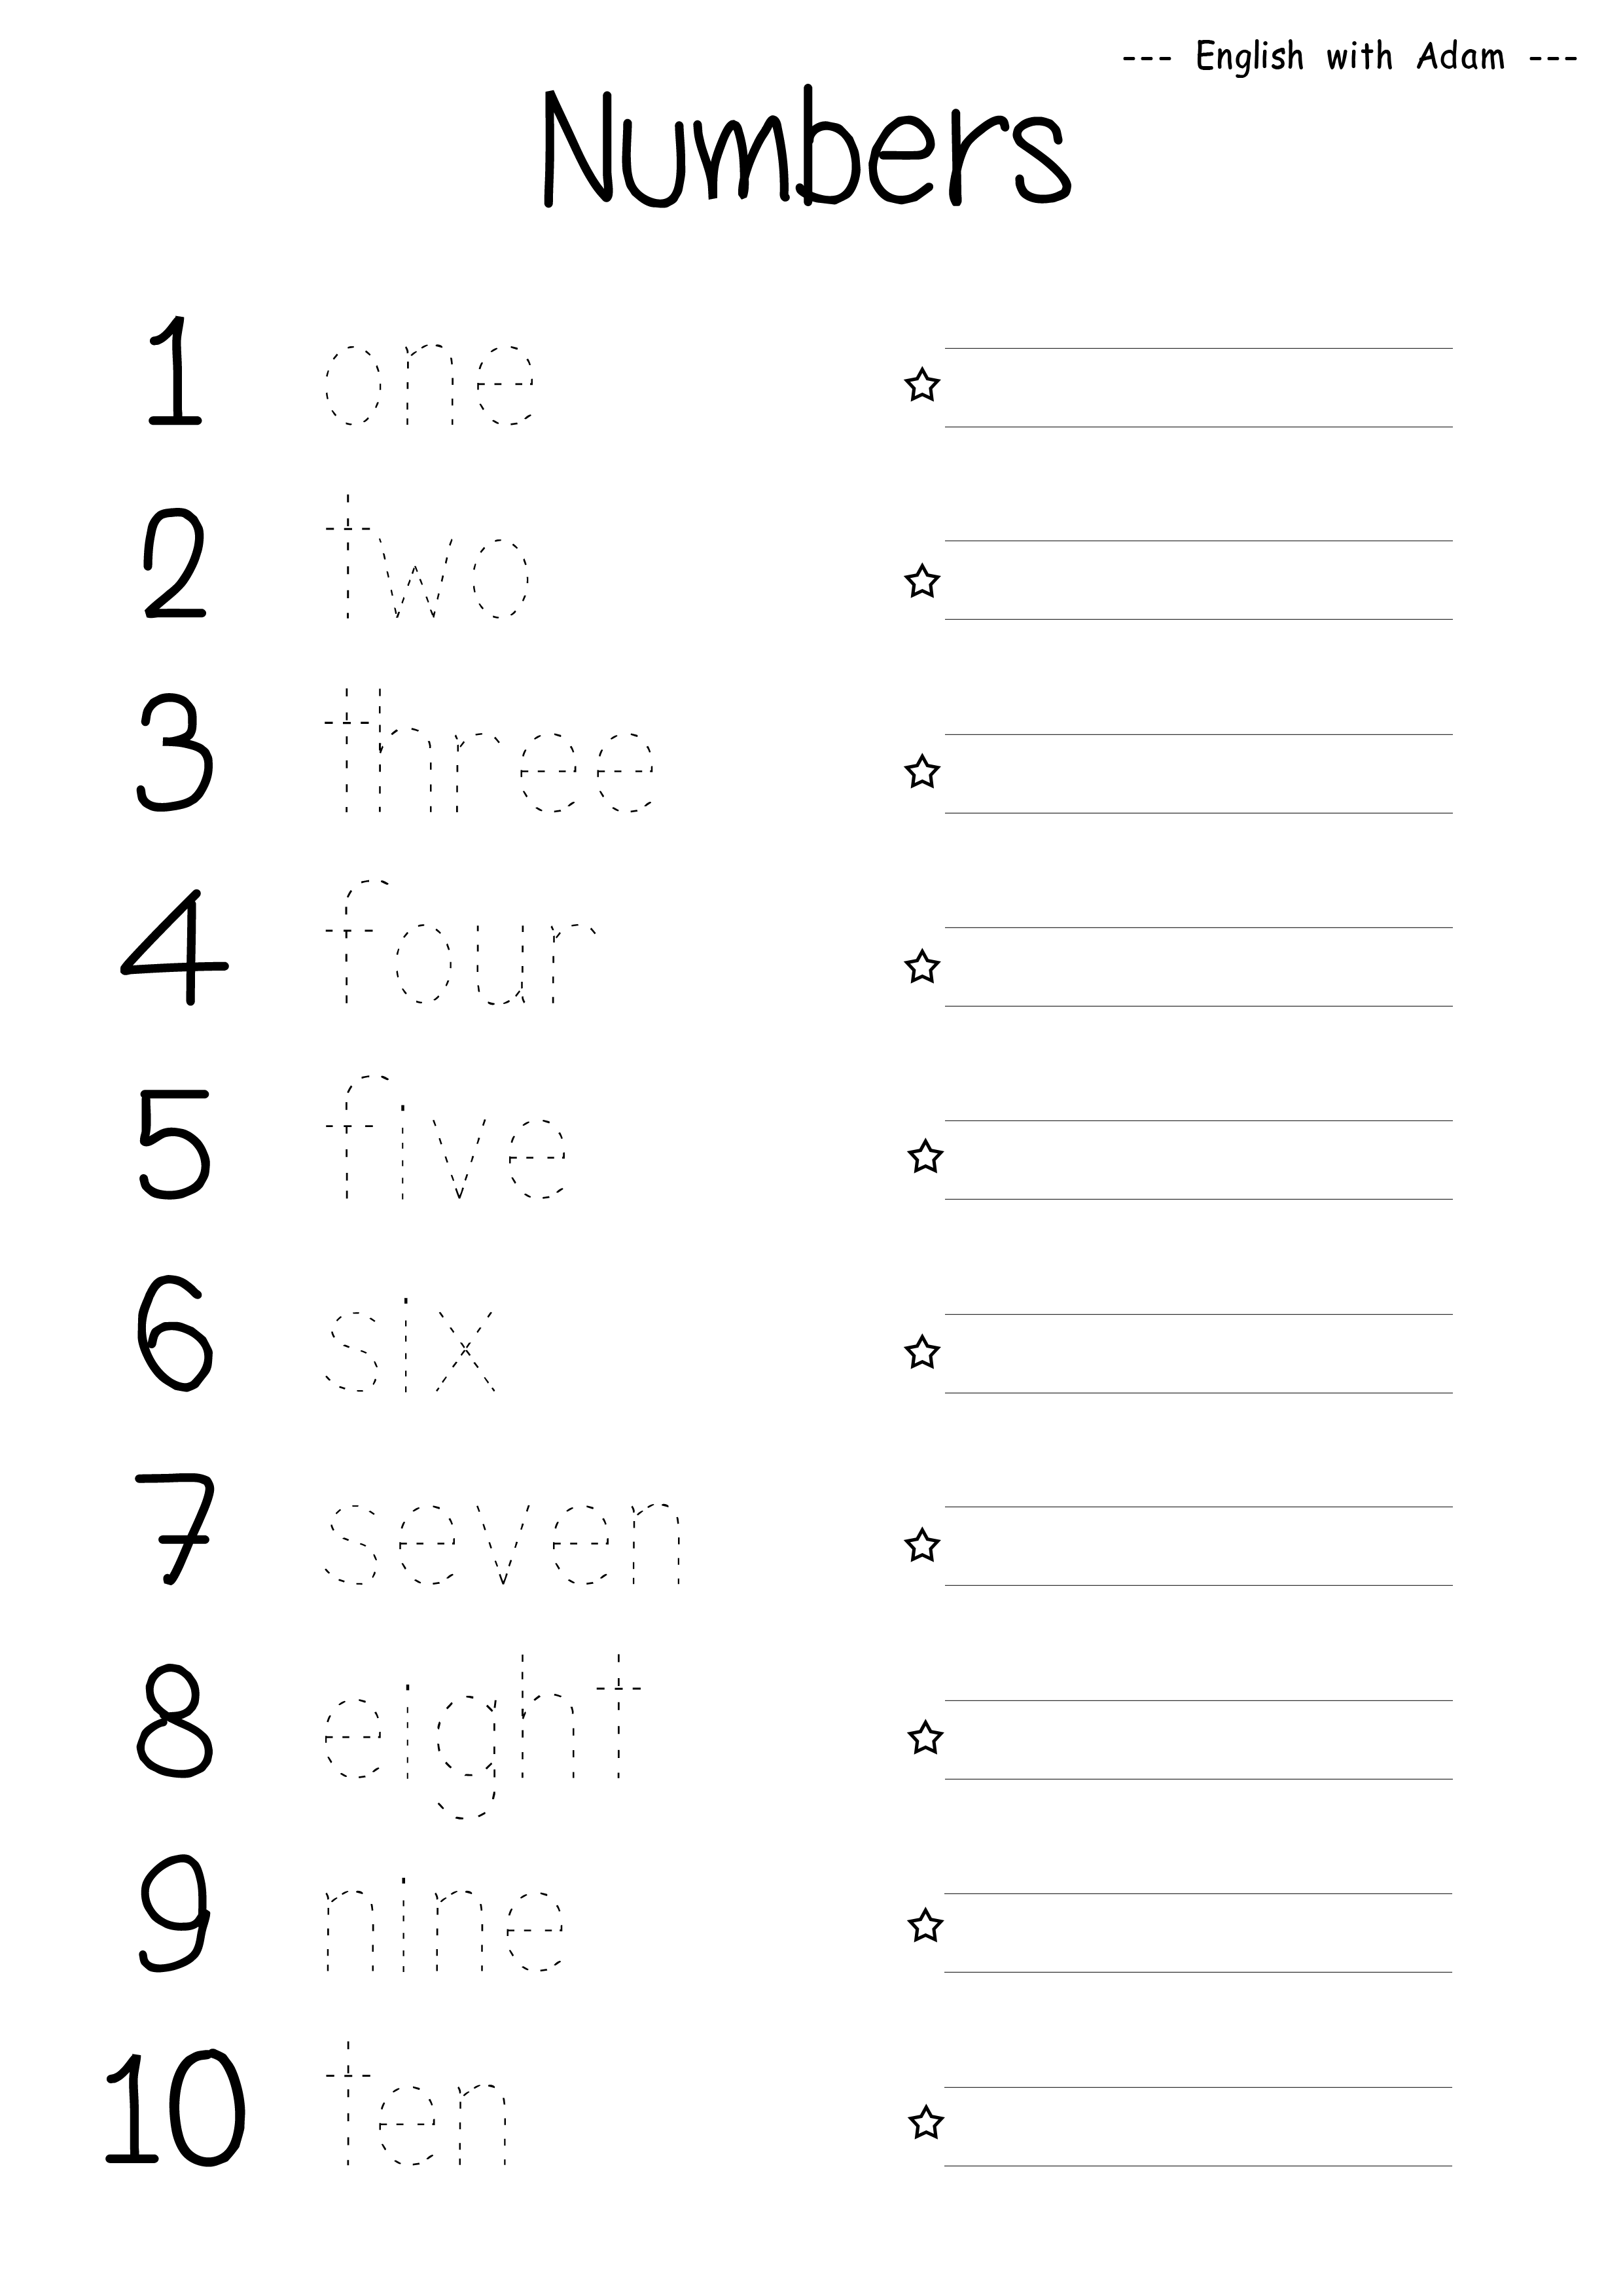 numbers | Number words worksheets, English activities for ...